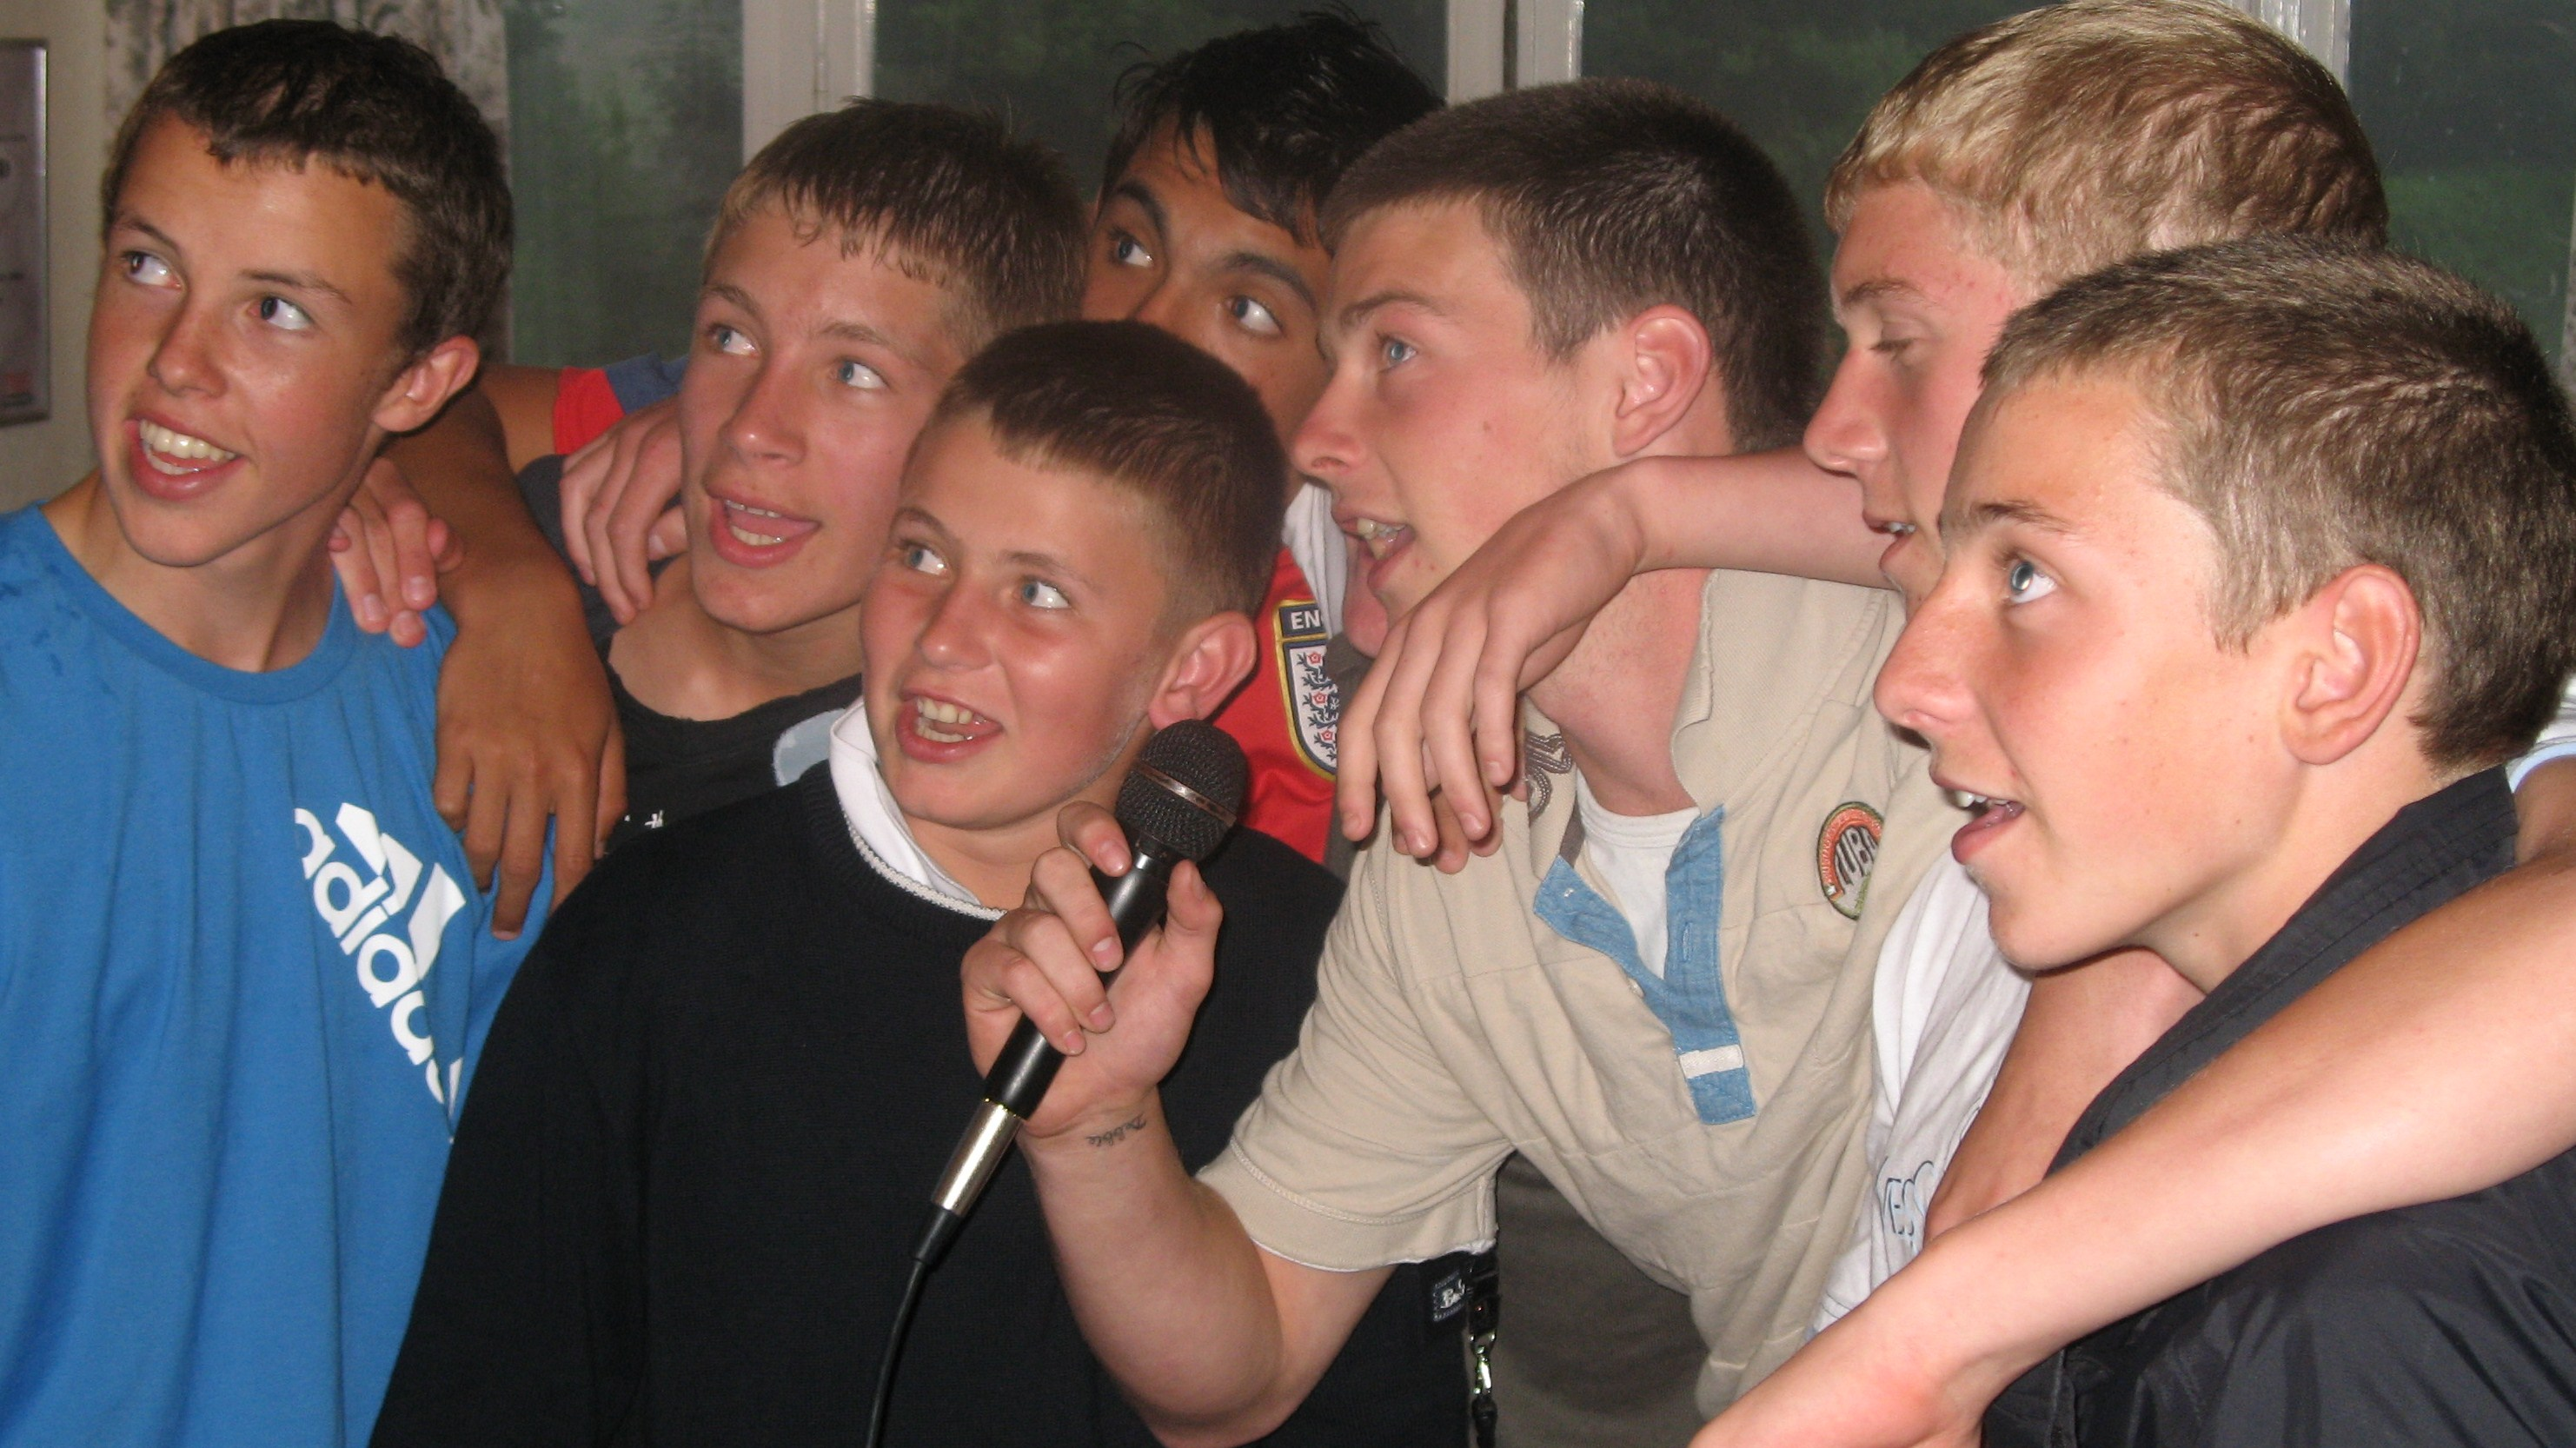 Karaoke Boys Fun Singing France